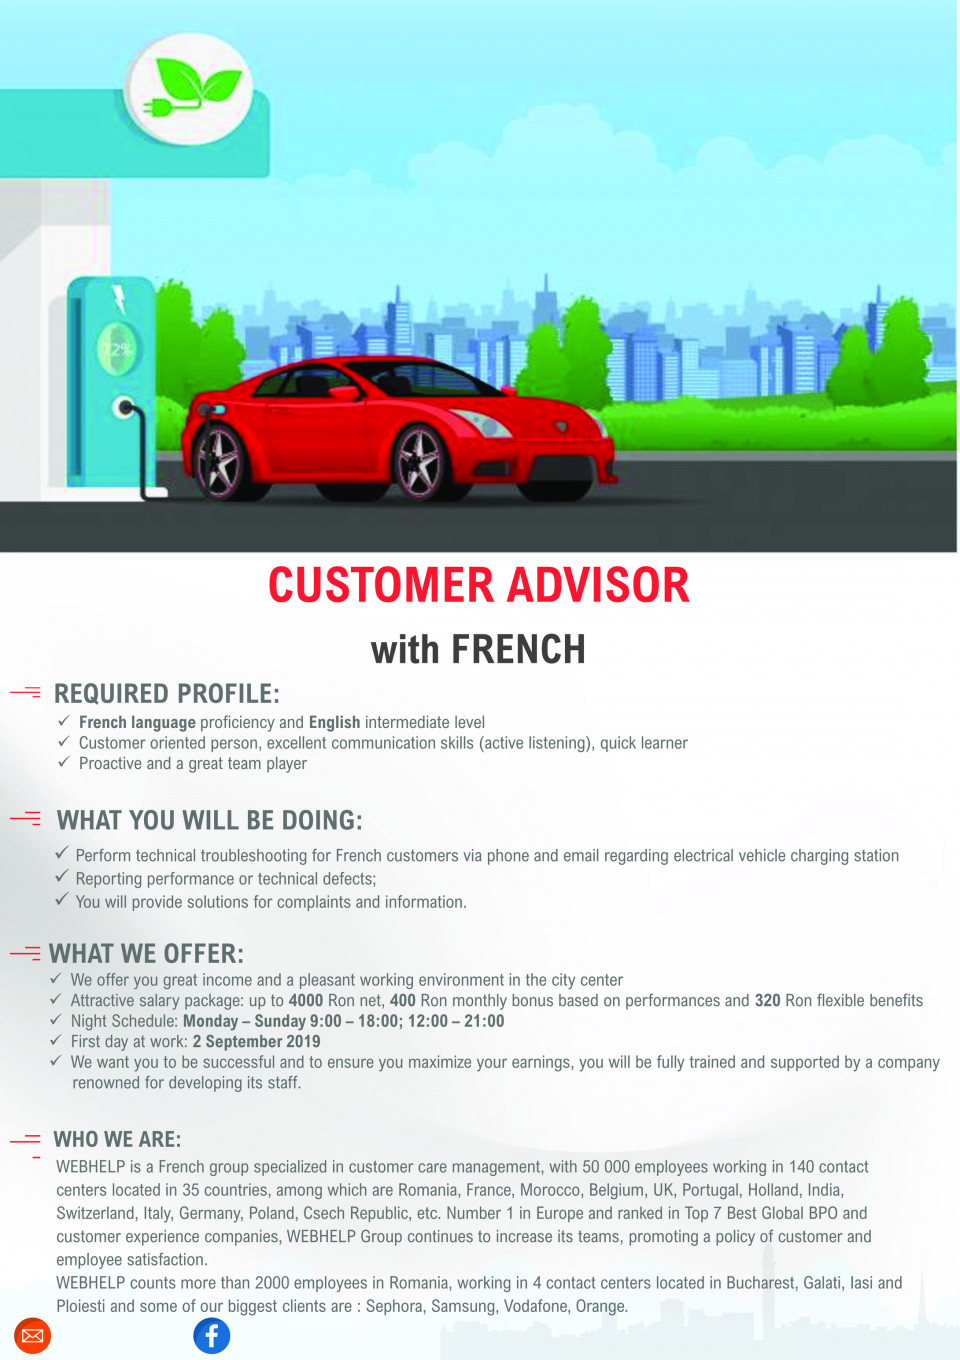 CUSTOMER ADVISOR with French